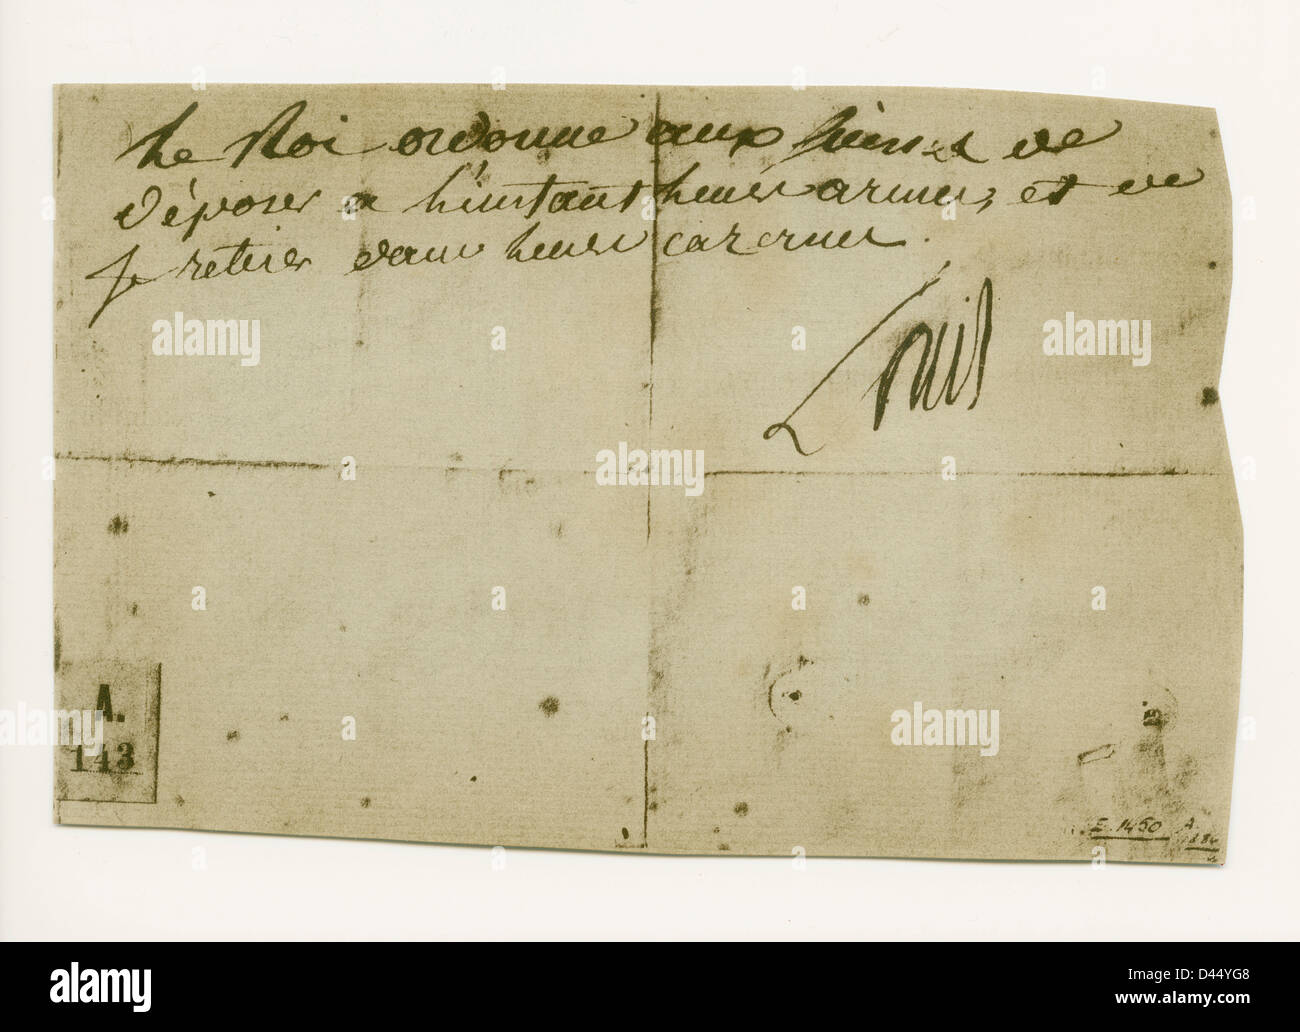 Last order signed by Louis XVI when he had taken refuge with the Legislative Assembly, 10 August 1792. - Stock Image